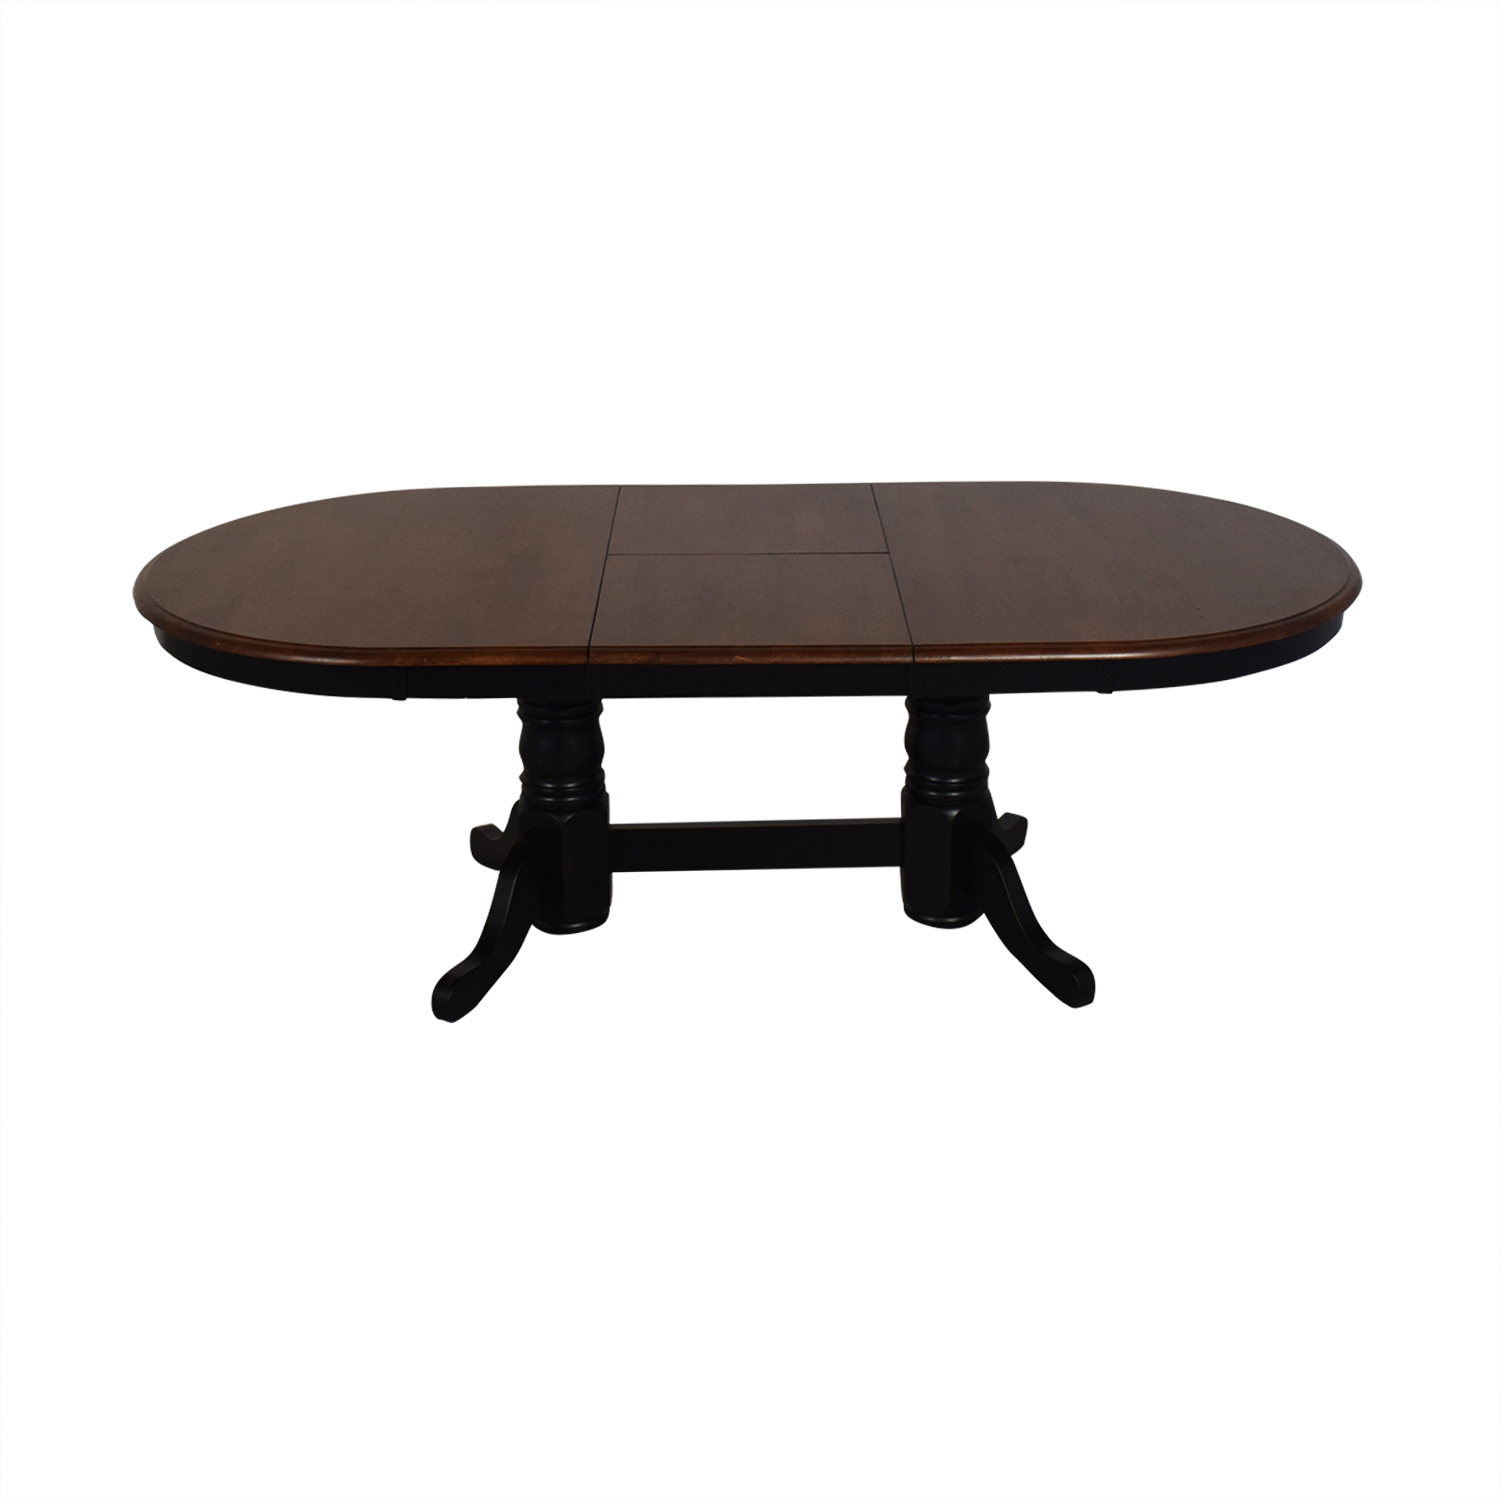 shop Raymour & Flanigan Raymour & Flanigan Extendable Dining Table online